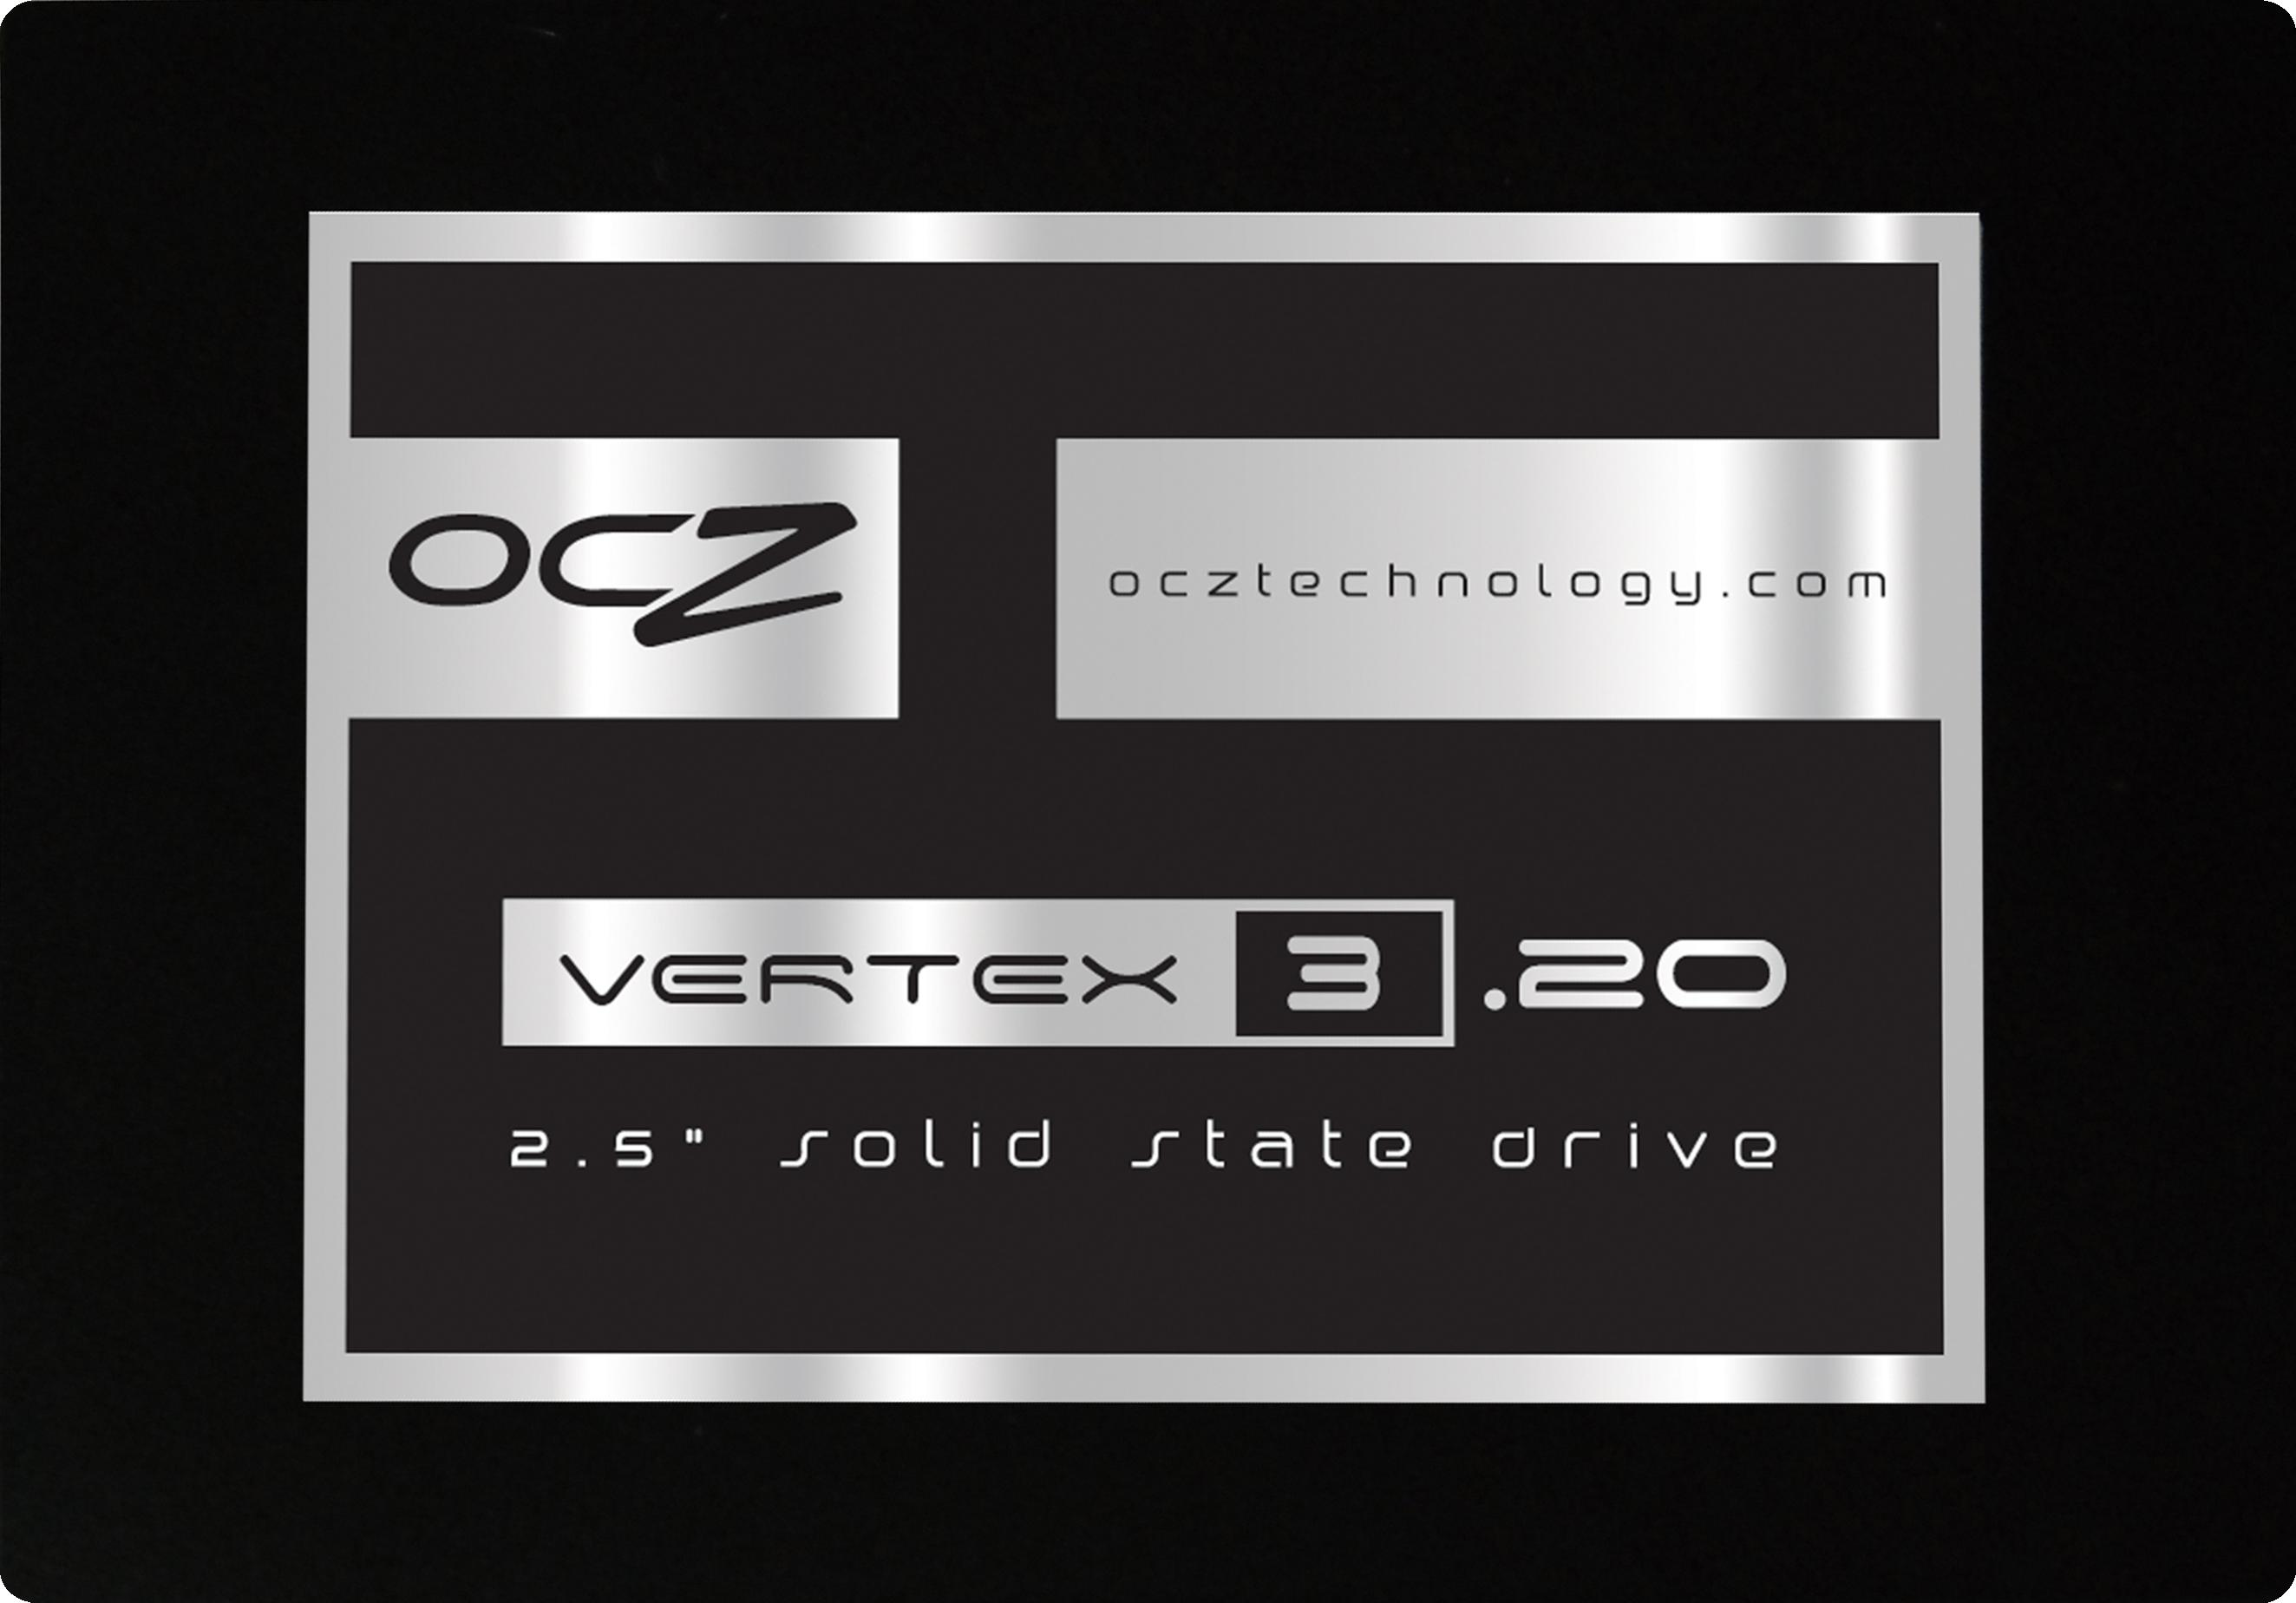 OCZ Vertex 3.20 240GB